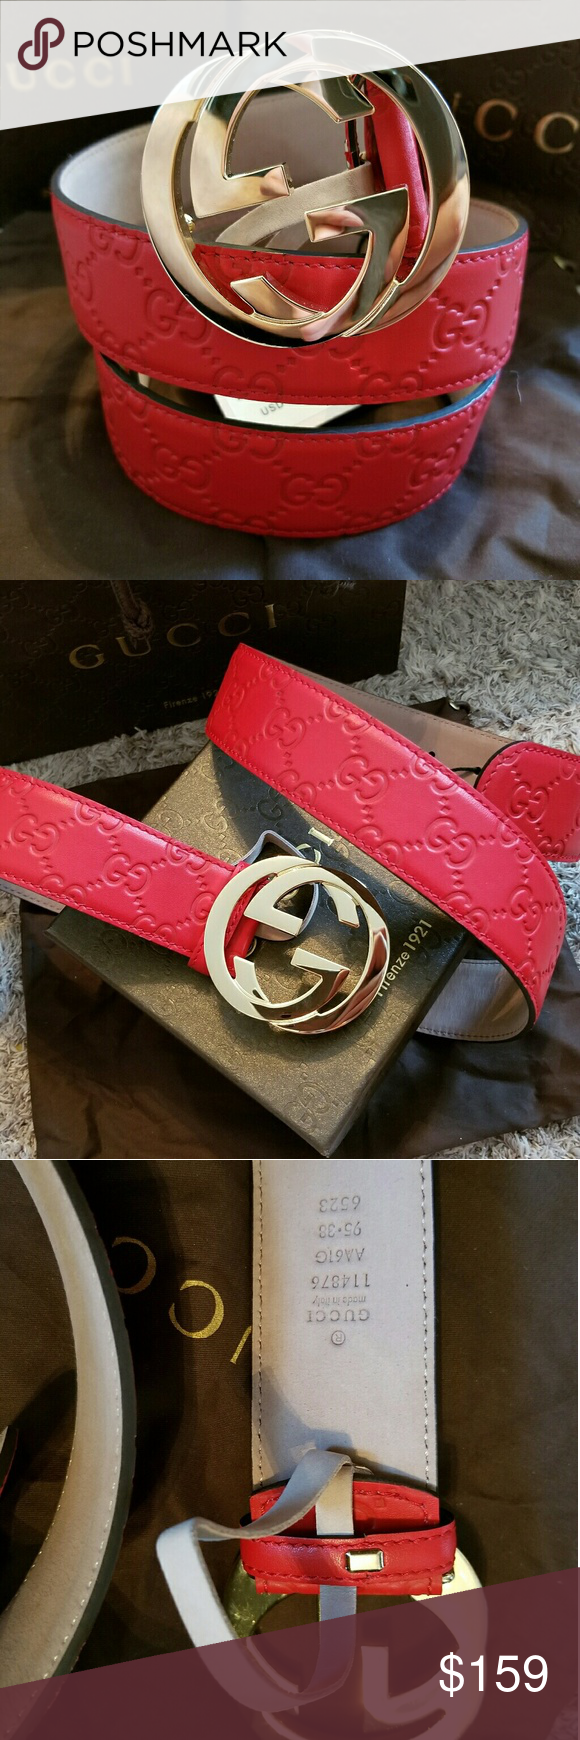 c79f539b948 😍Authentic Gucci Belt Red Guccissima Print 😍Authentic Gucci Belt Red  Guccisima Print with Gold GG Buckle. Nice! Comes with tags